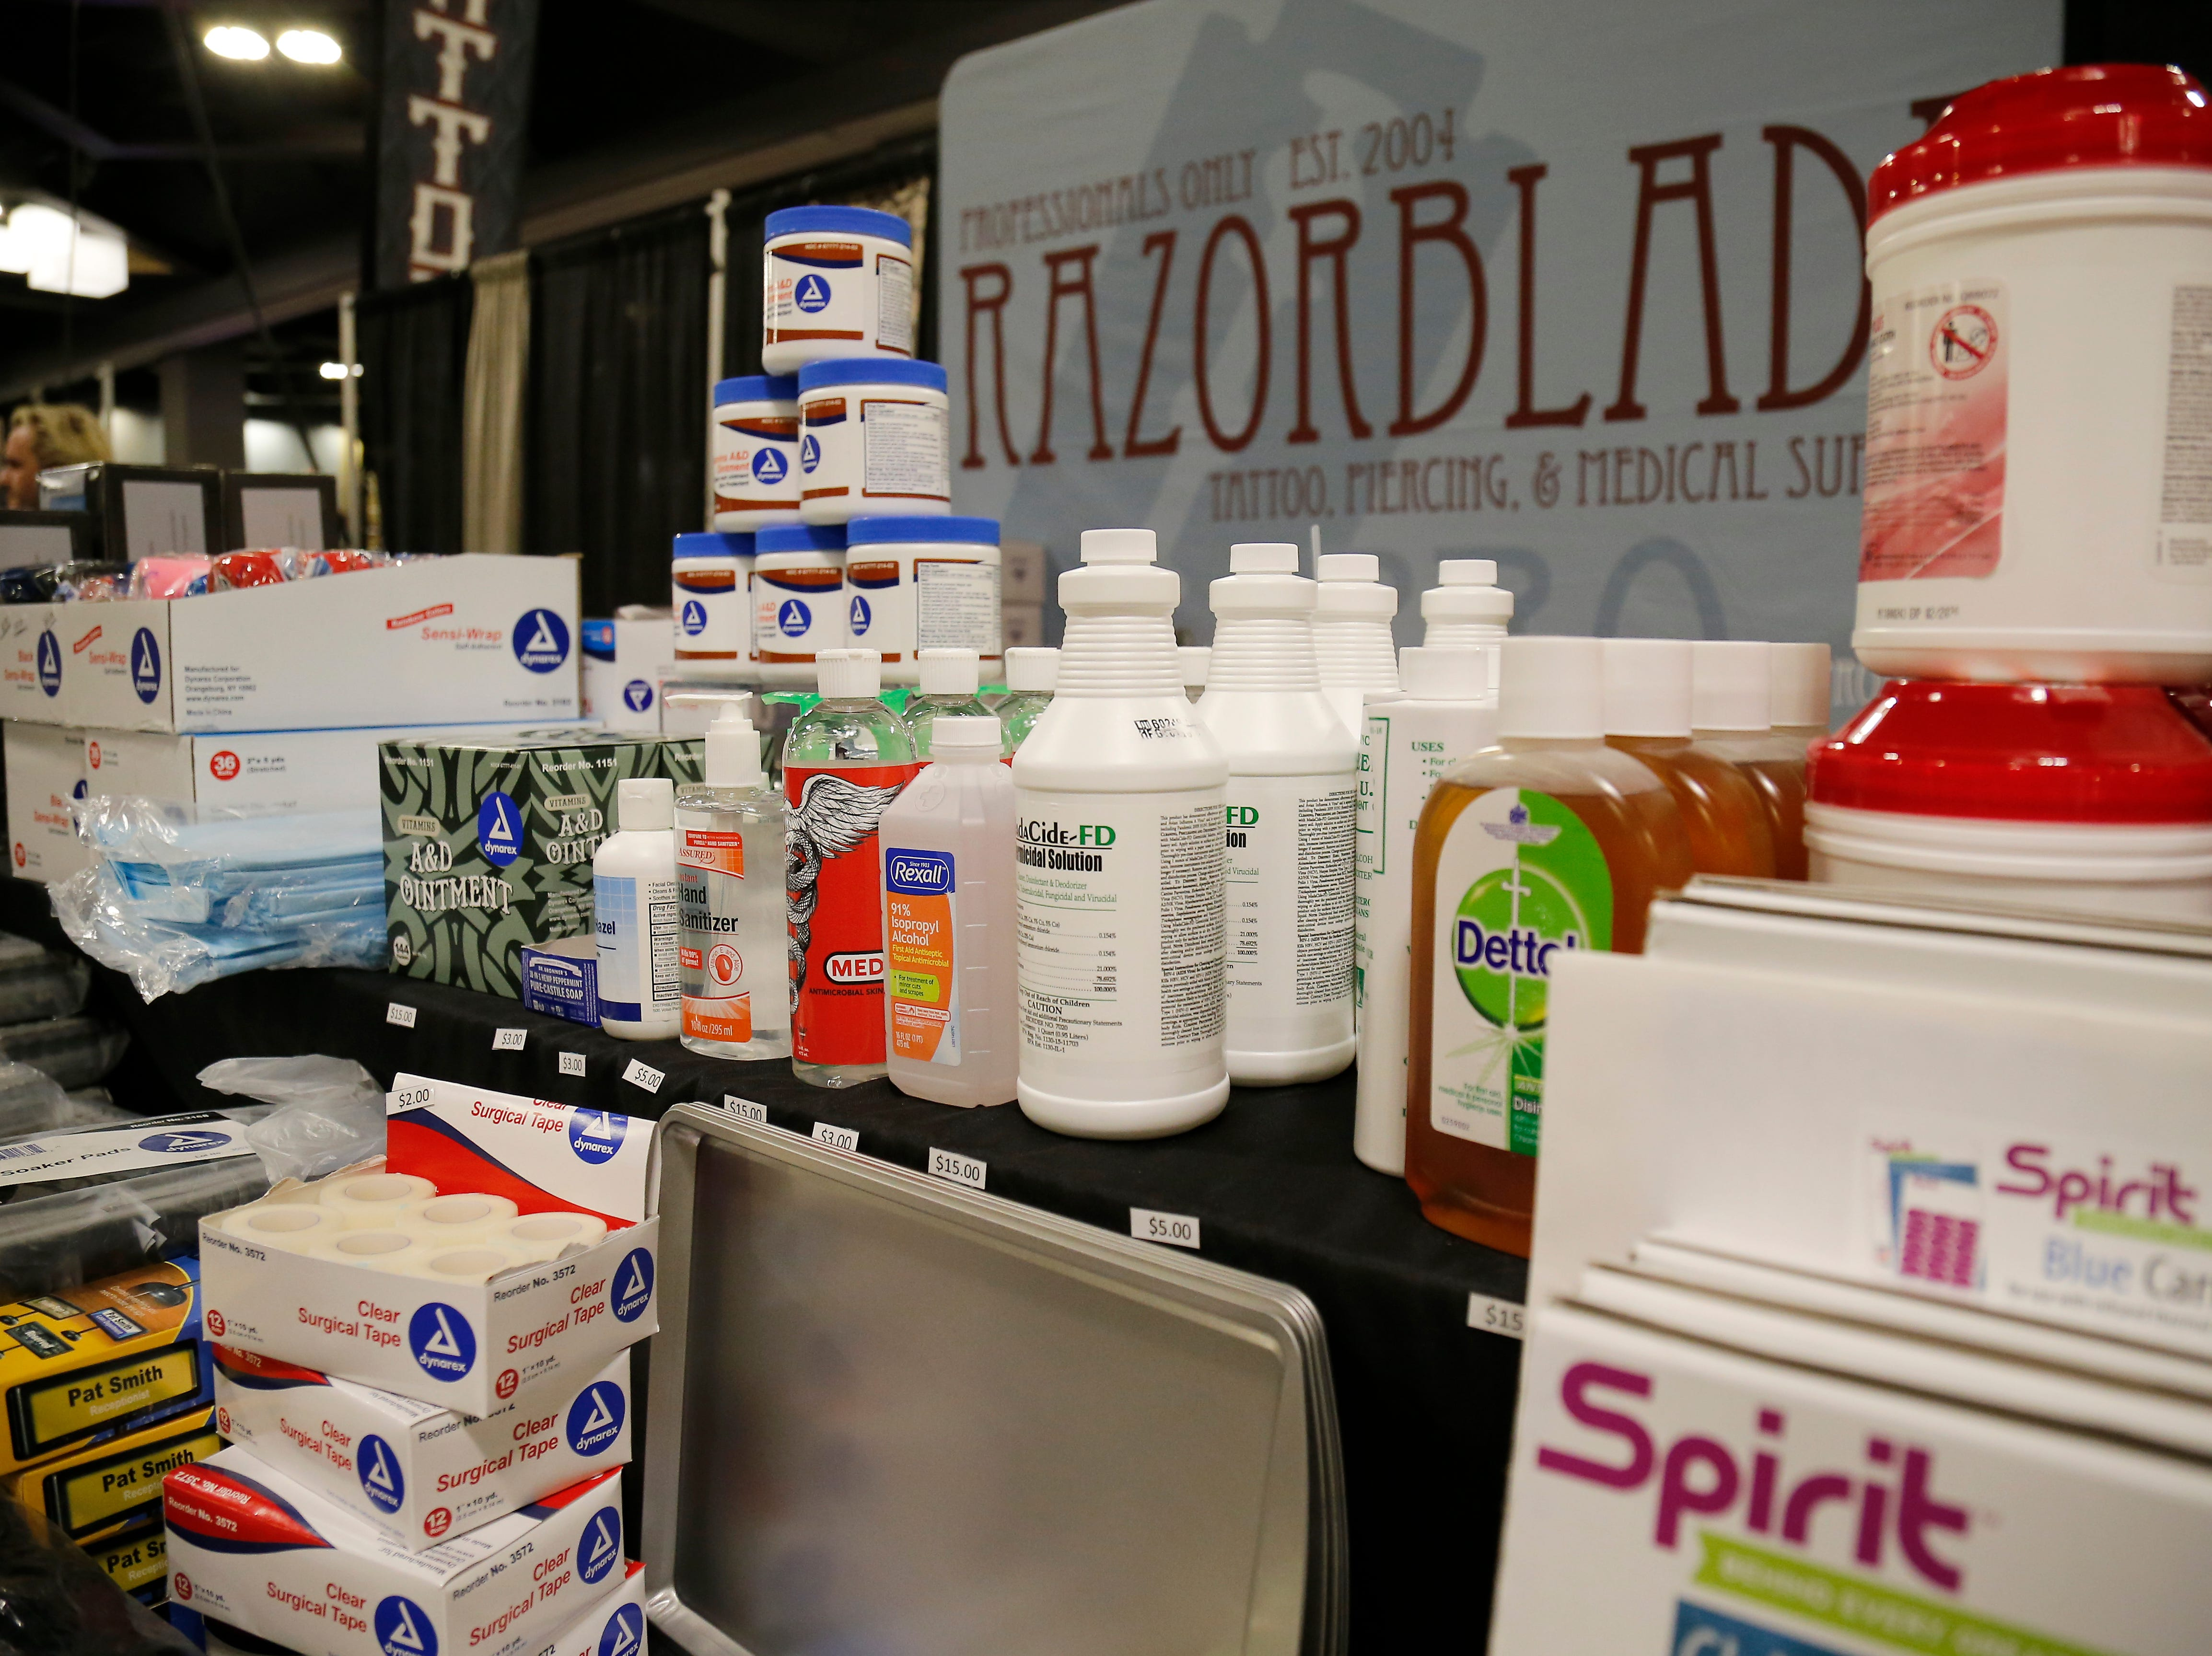 Tattoo supplies are displayed during the Greater Cincinnati Tattoo Arts Convention at the Northern Kentucky Convention Center in Covington, Ky., on Friday, Sept. 7, 2018.